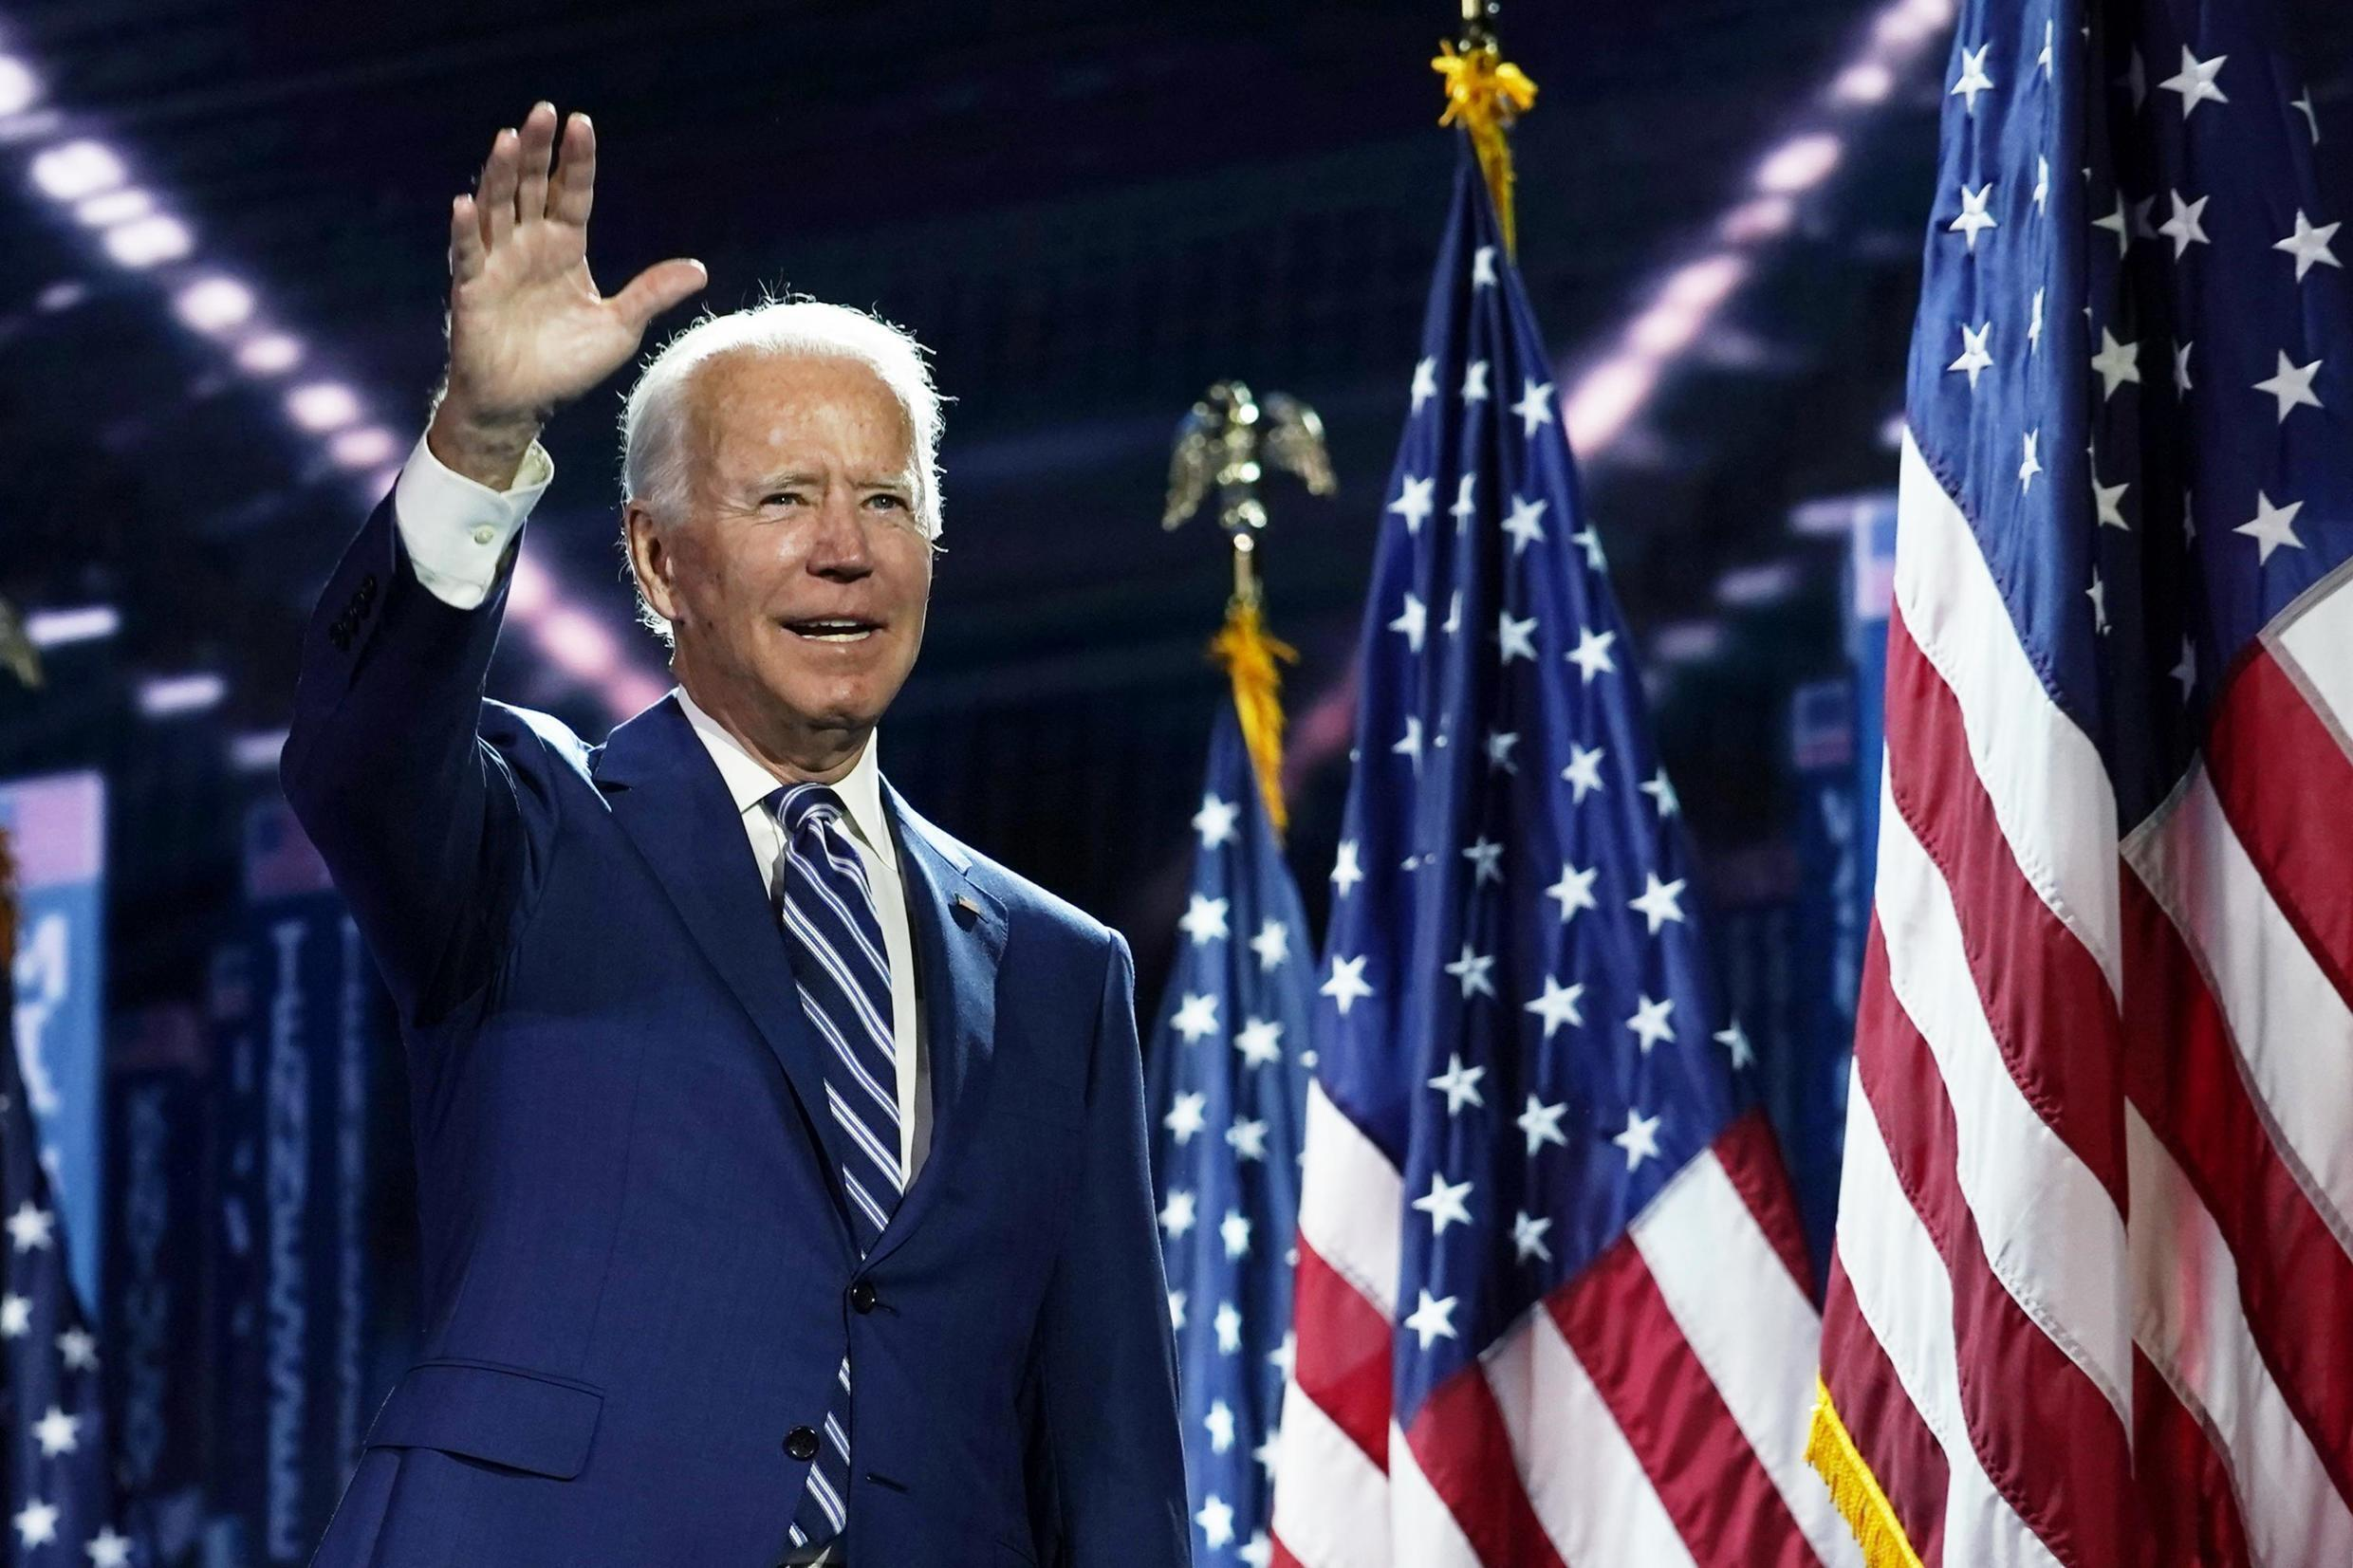 Joe Biden at the Democratic Convention on August 19, 2020